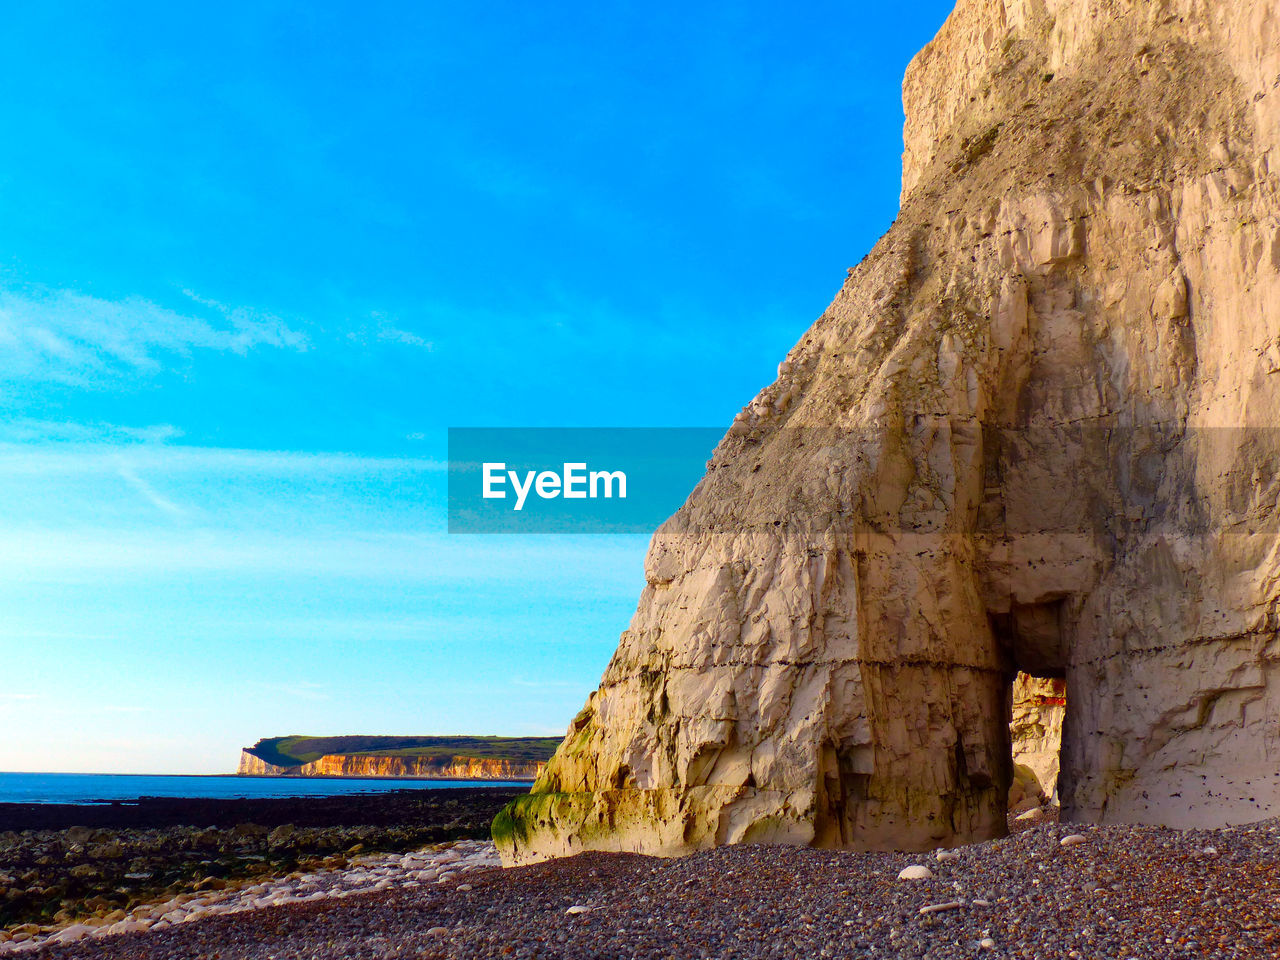 VIEW OF ROCK FORMATION BY SEA AGAINST SKY